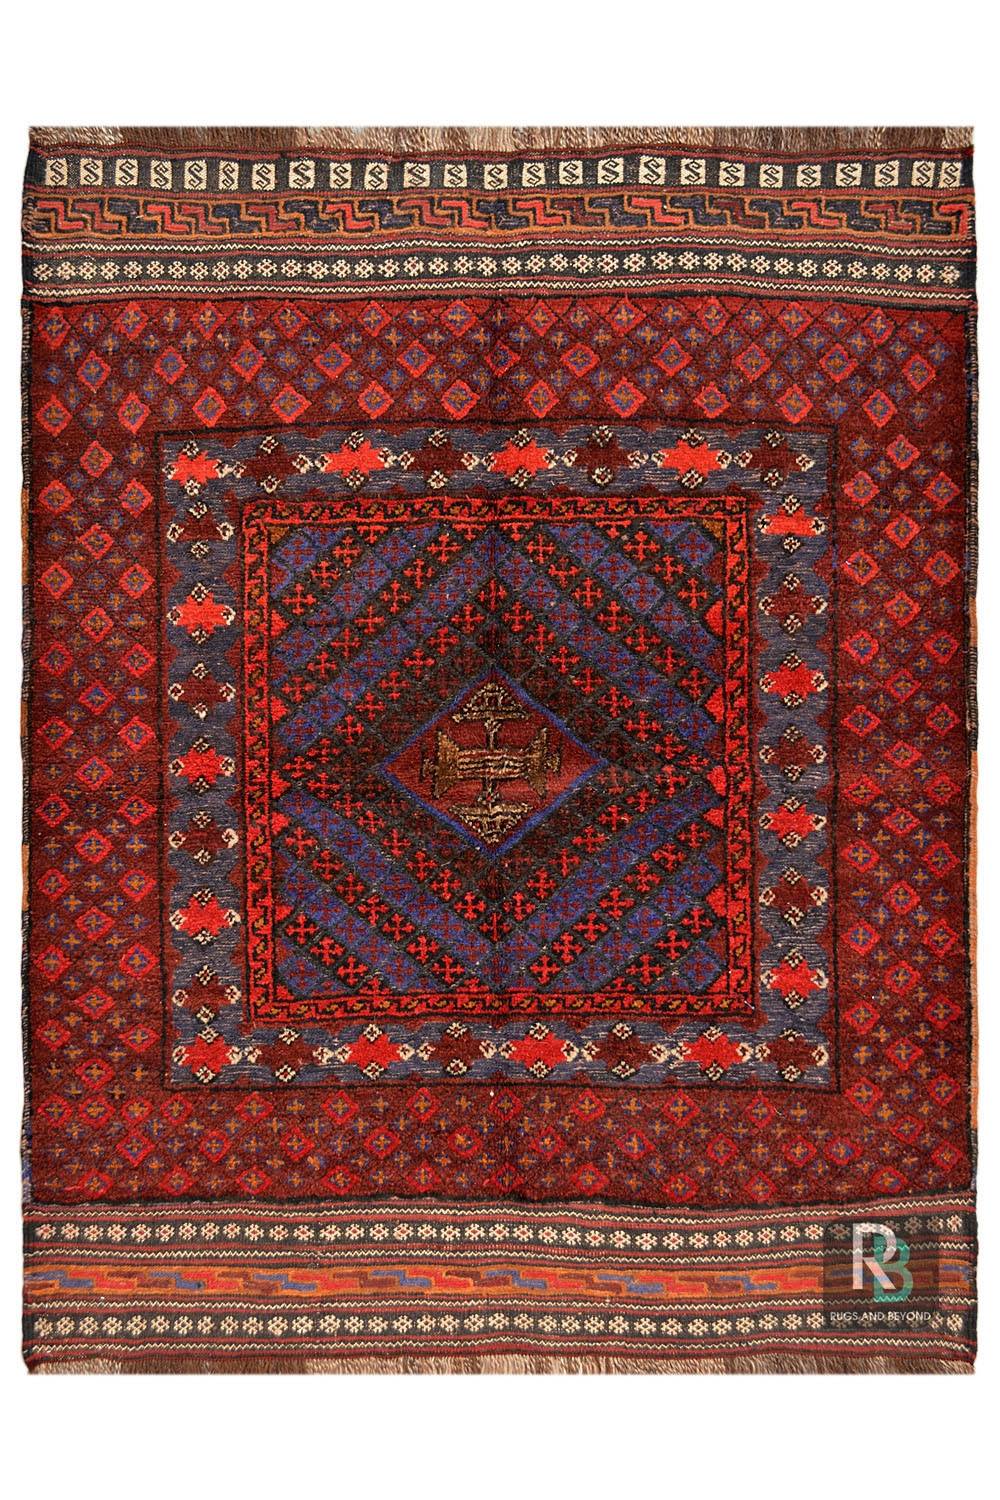 Bargesta Diamond Handmade Kilim Carpet And Antique Kilim Rugs